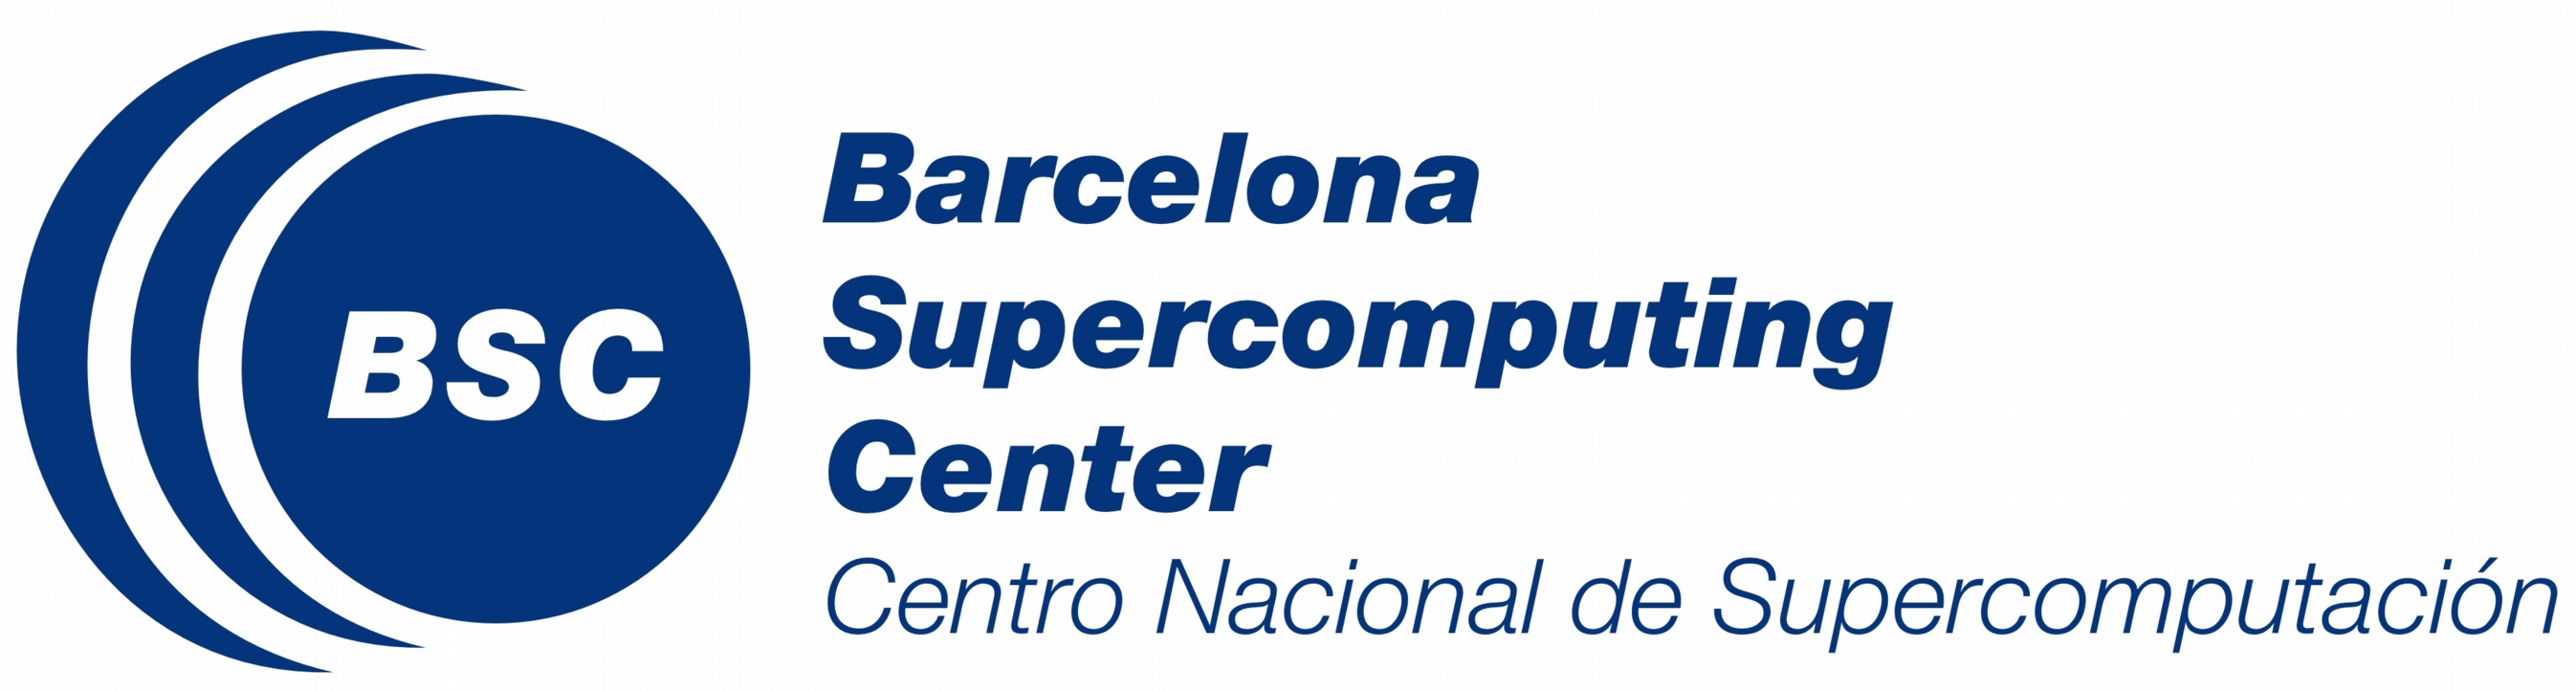 Logo Barcelona Supercomputing Center